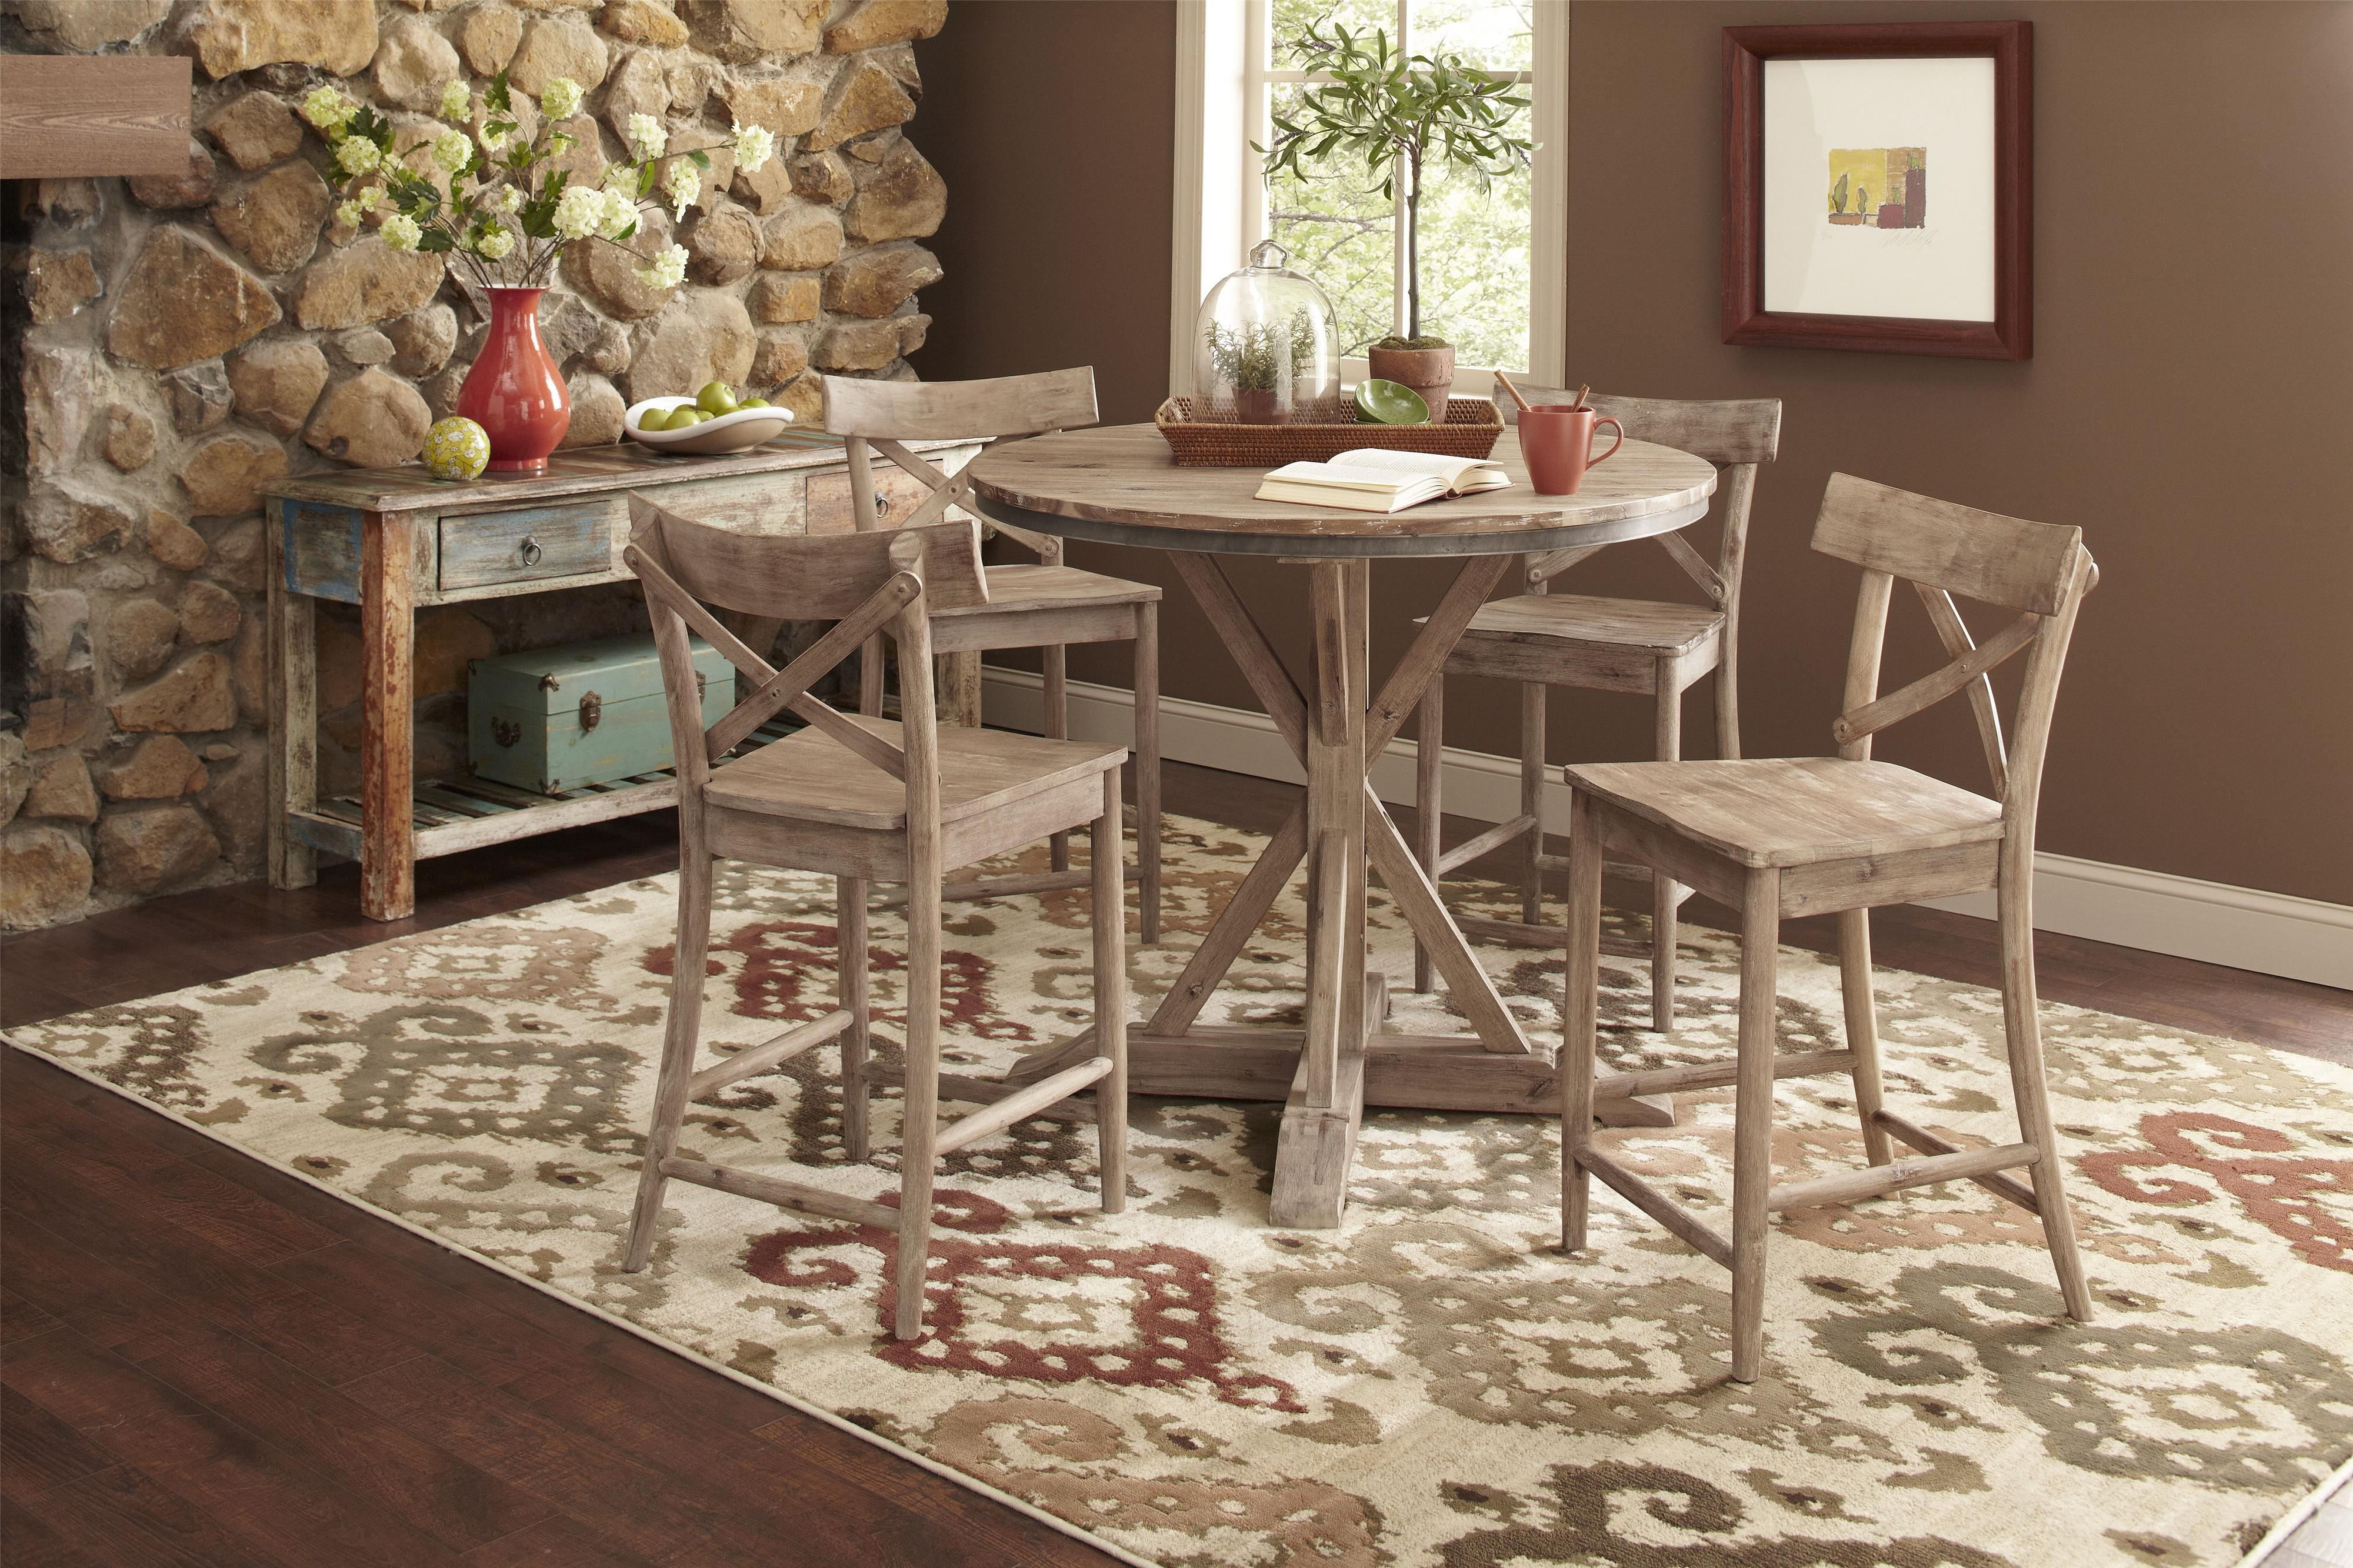 item round rustic kitchen table Largo Callista Rustic Casual Counter Height Dining Table Set Lindy s Furniture Company Pub Table and Stool Set